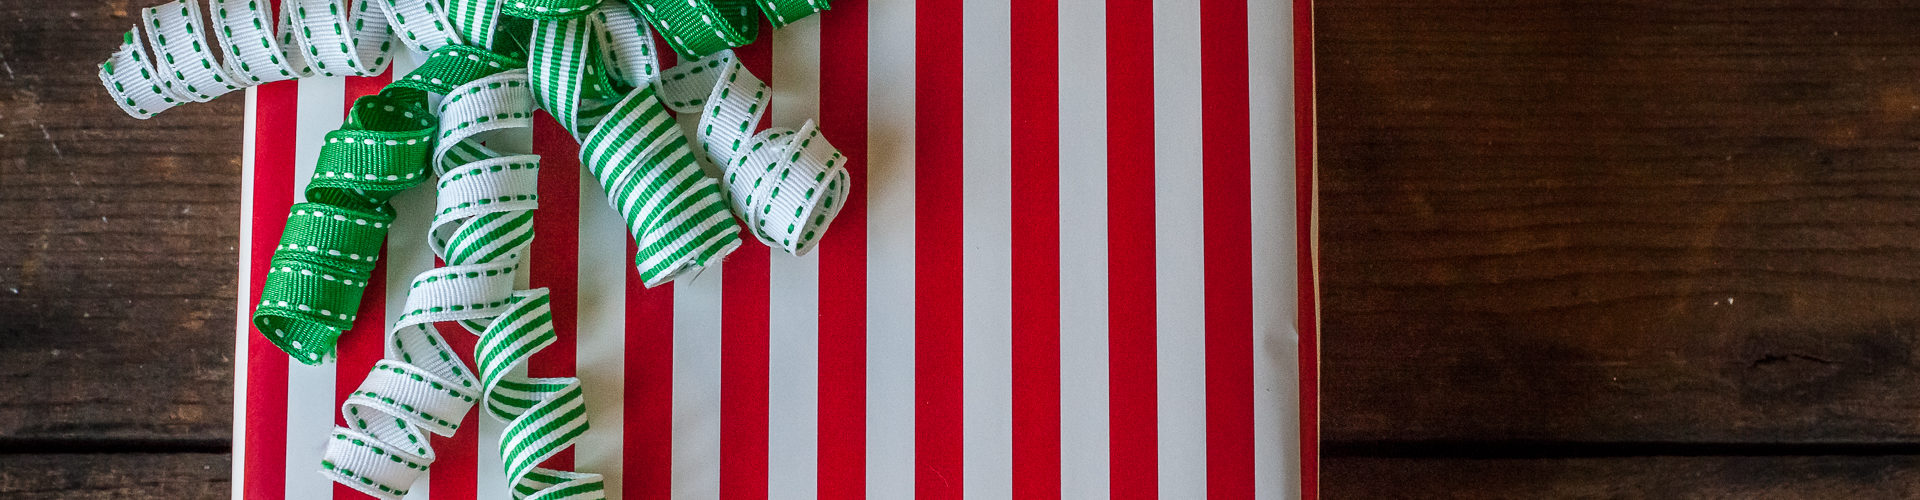 Gift wrapping station organization ideas red white striped present green ribbon bow